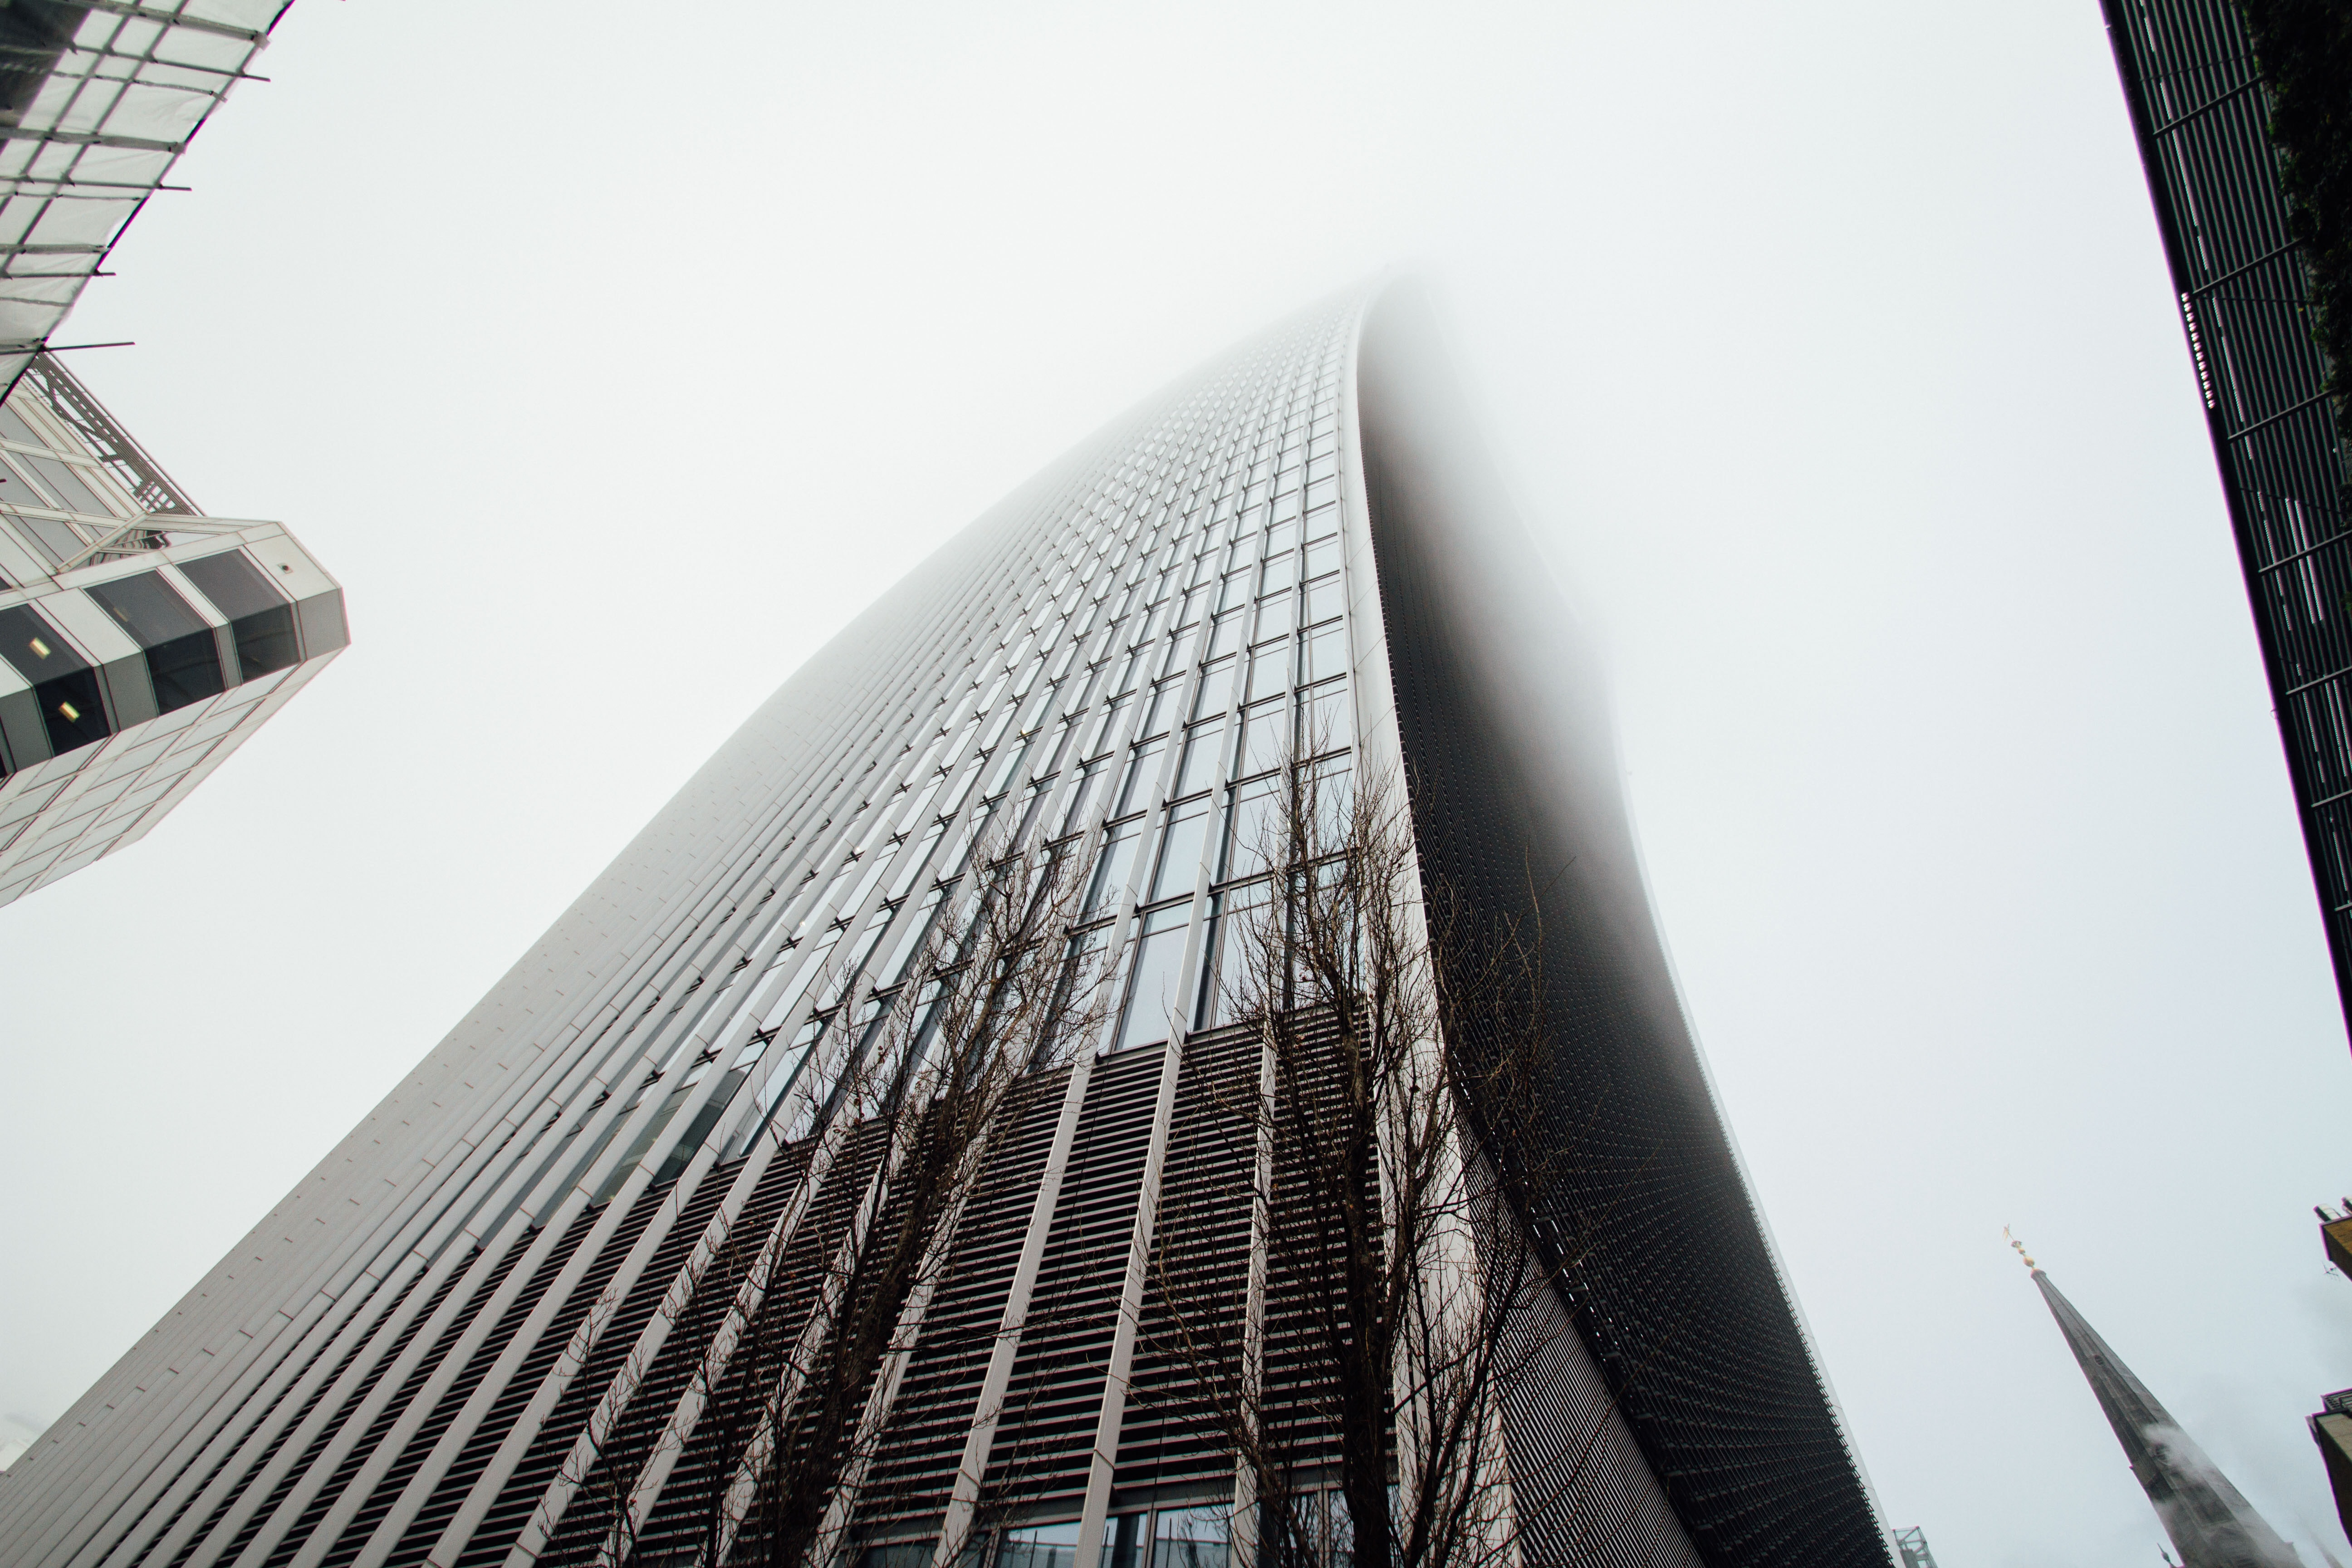 Low Angle View of Skyscrapers Against Sky, Architecture, Holidays, Technology, Tall, HQ Photo